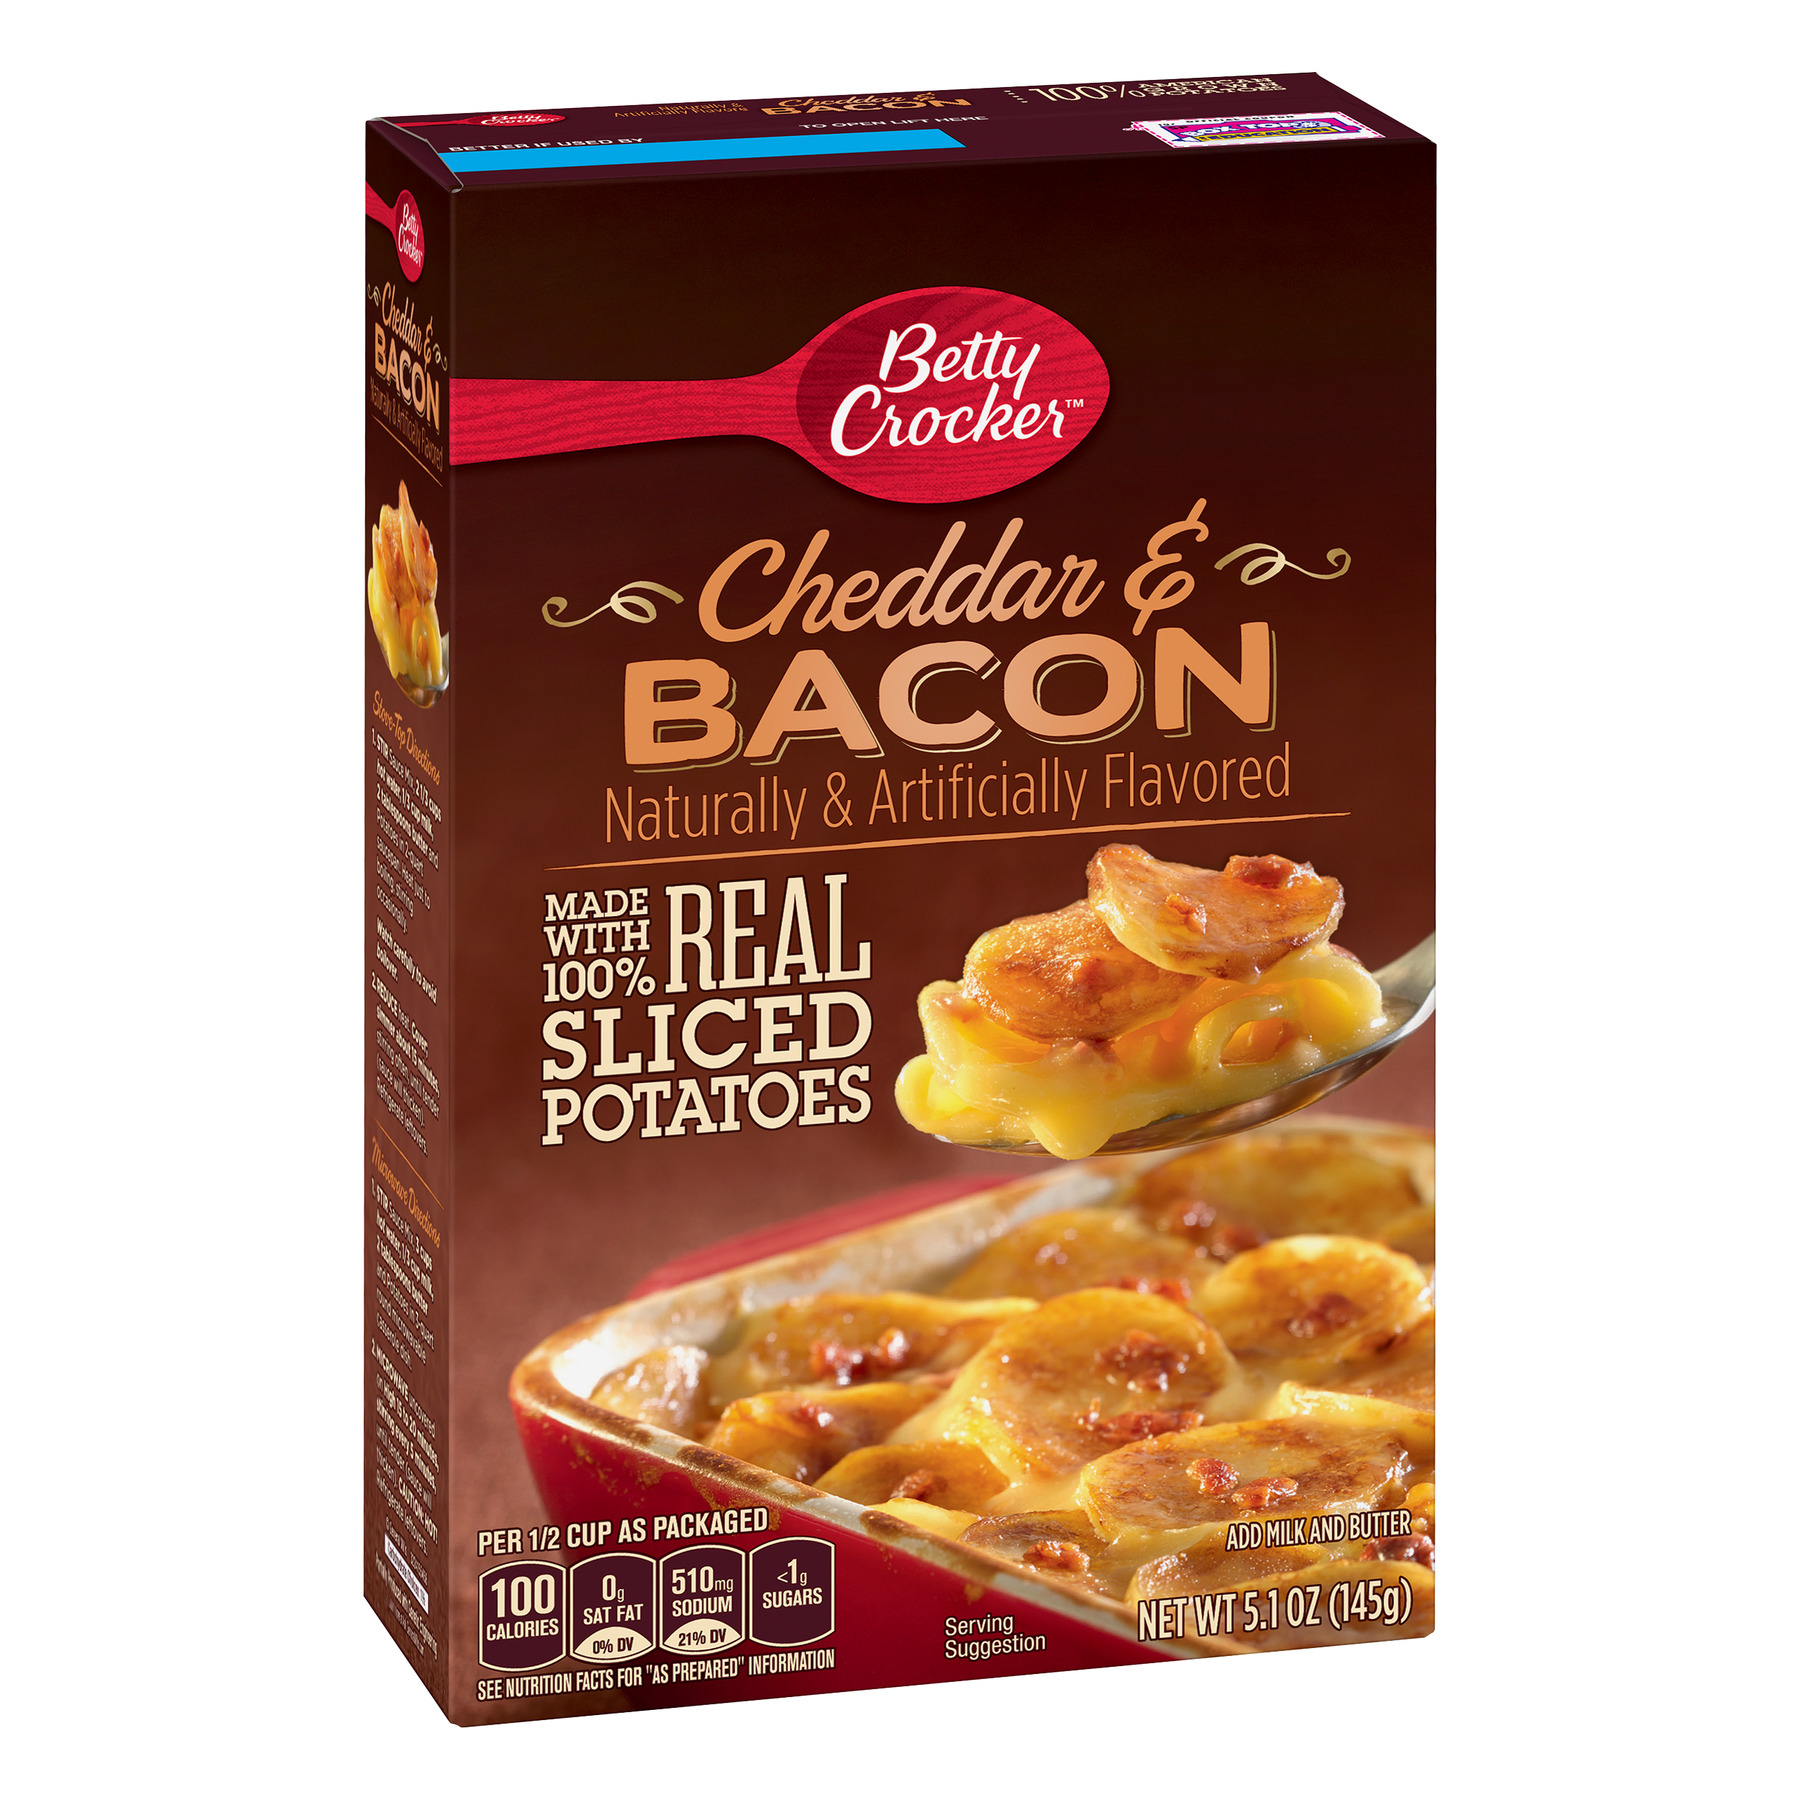 Betty Crocker Cheddar and Bacon Potatoes, 5.1 oz Box